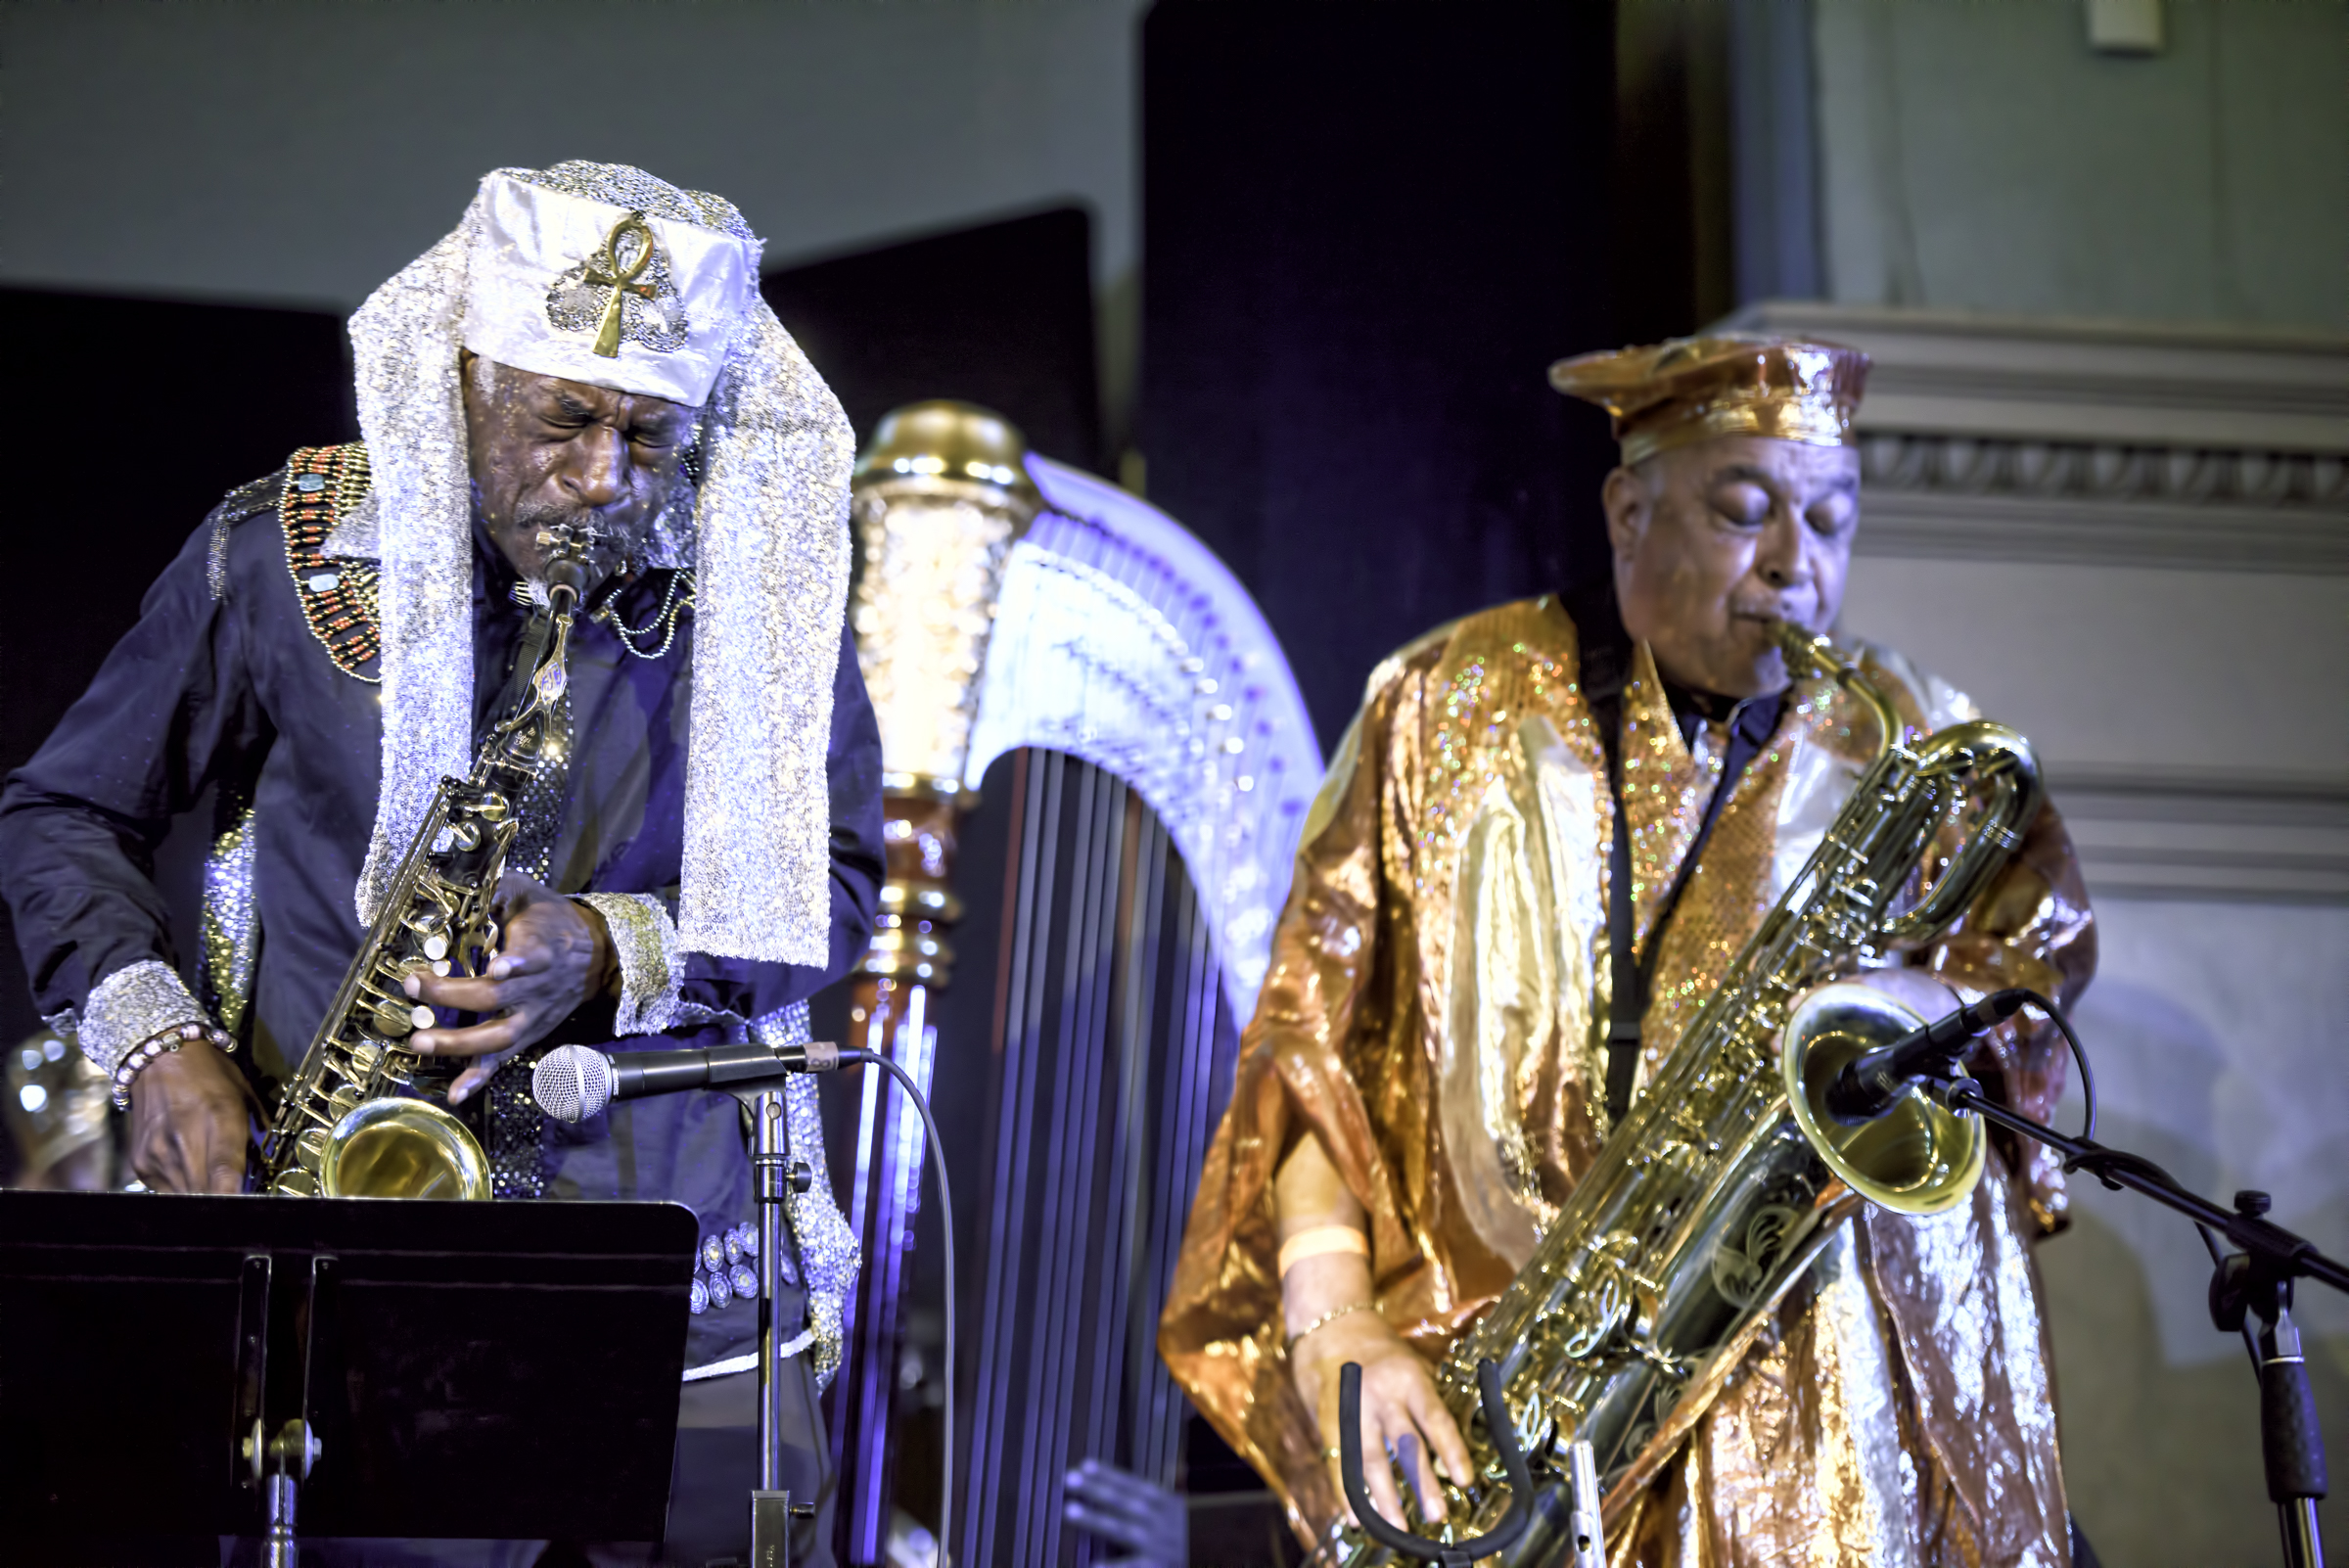 Knoel Scott and Danny Ray Thompson with the Sun Ra Arkestra Directed by Marsall Allen at the 20th Anniversary Vision Festival 2015